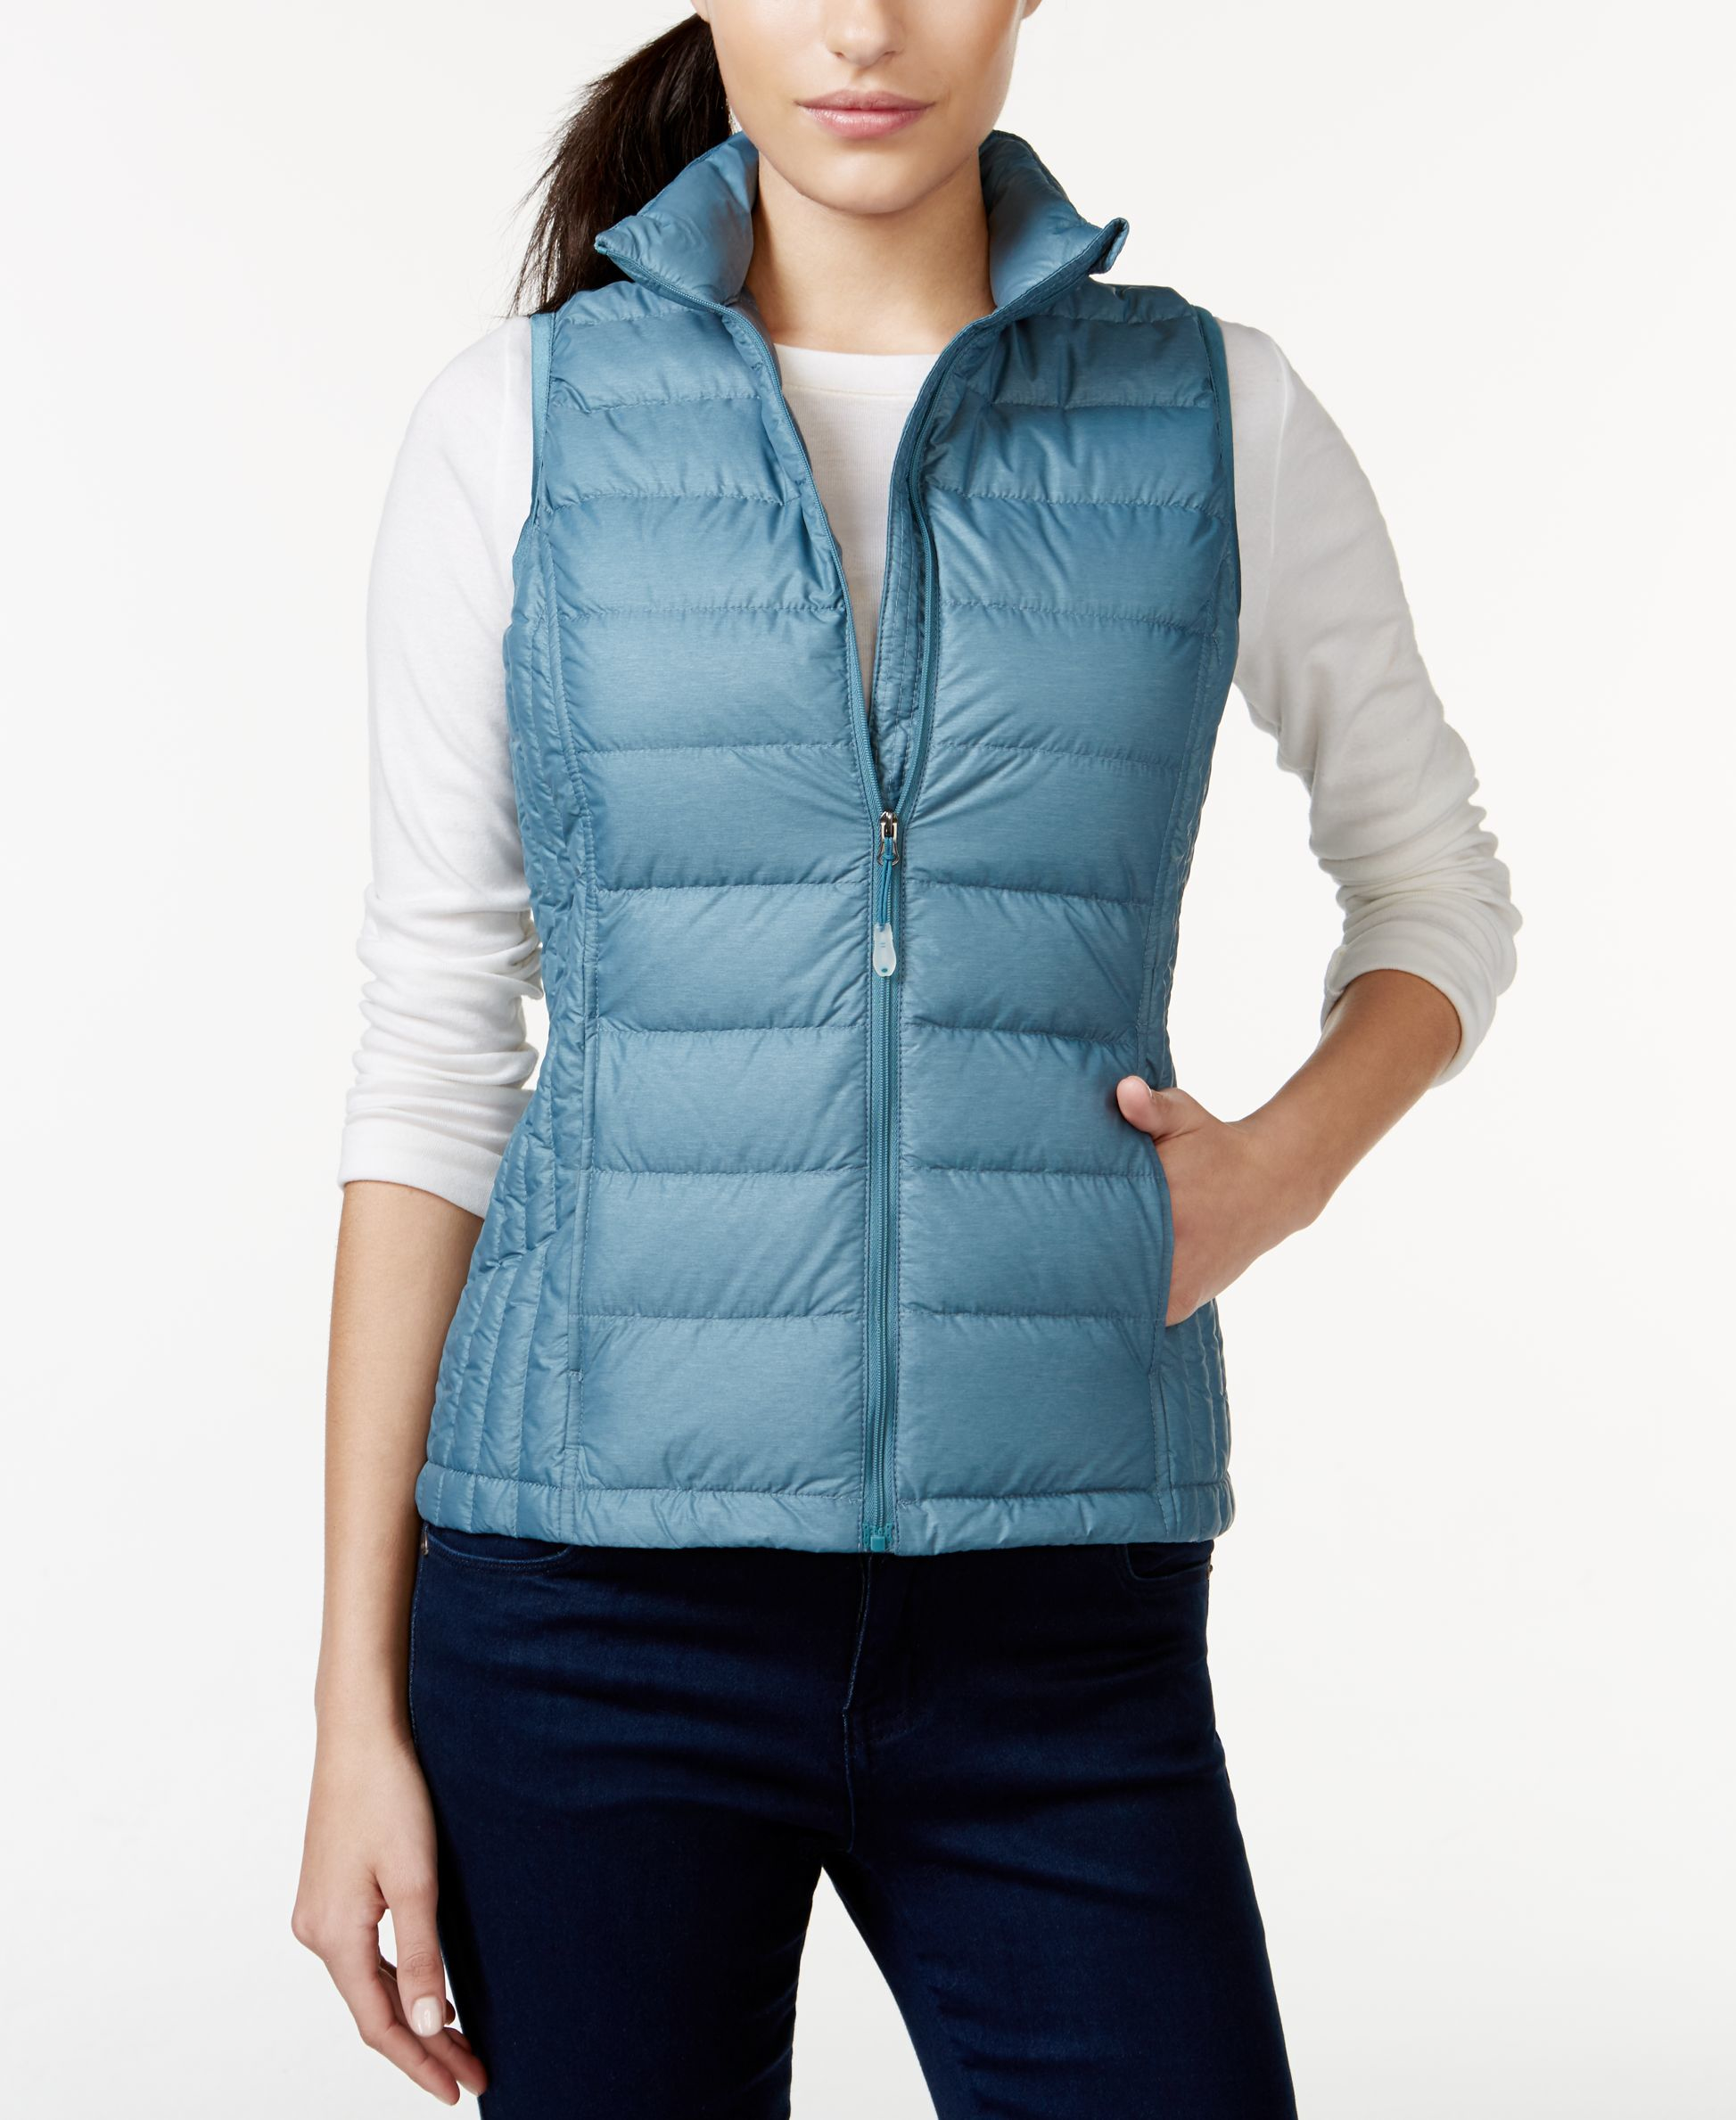 Shop for and buy 32 degrees clothing online at Macy's. Find 32 degrees clothing at Macy's.